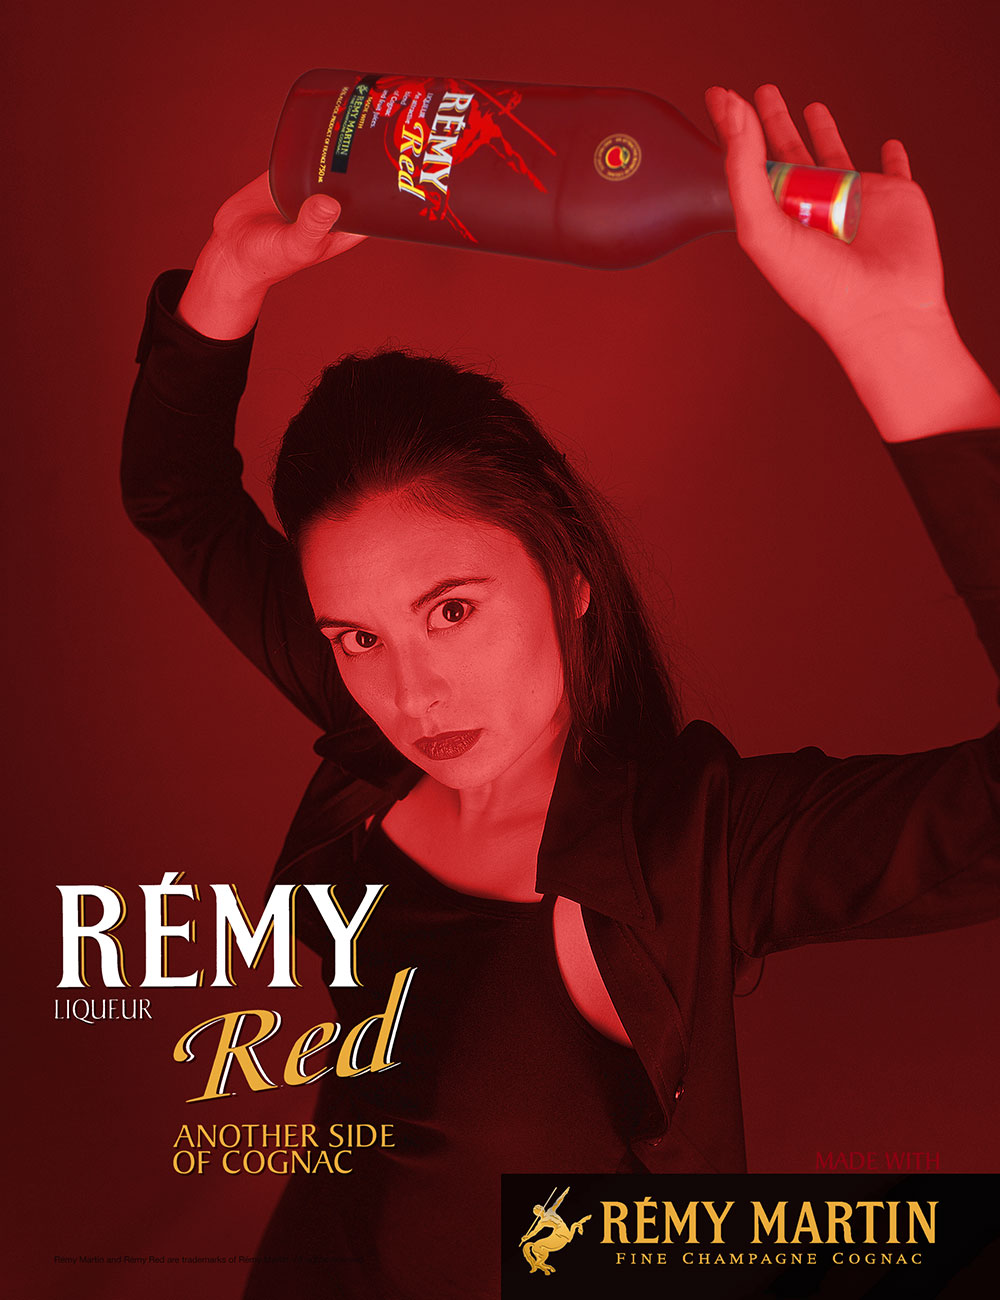 Remy Red Red Campaign Joe